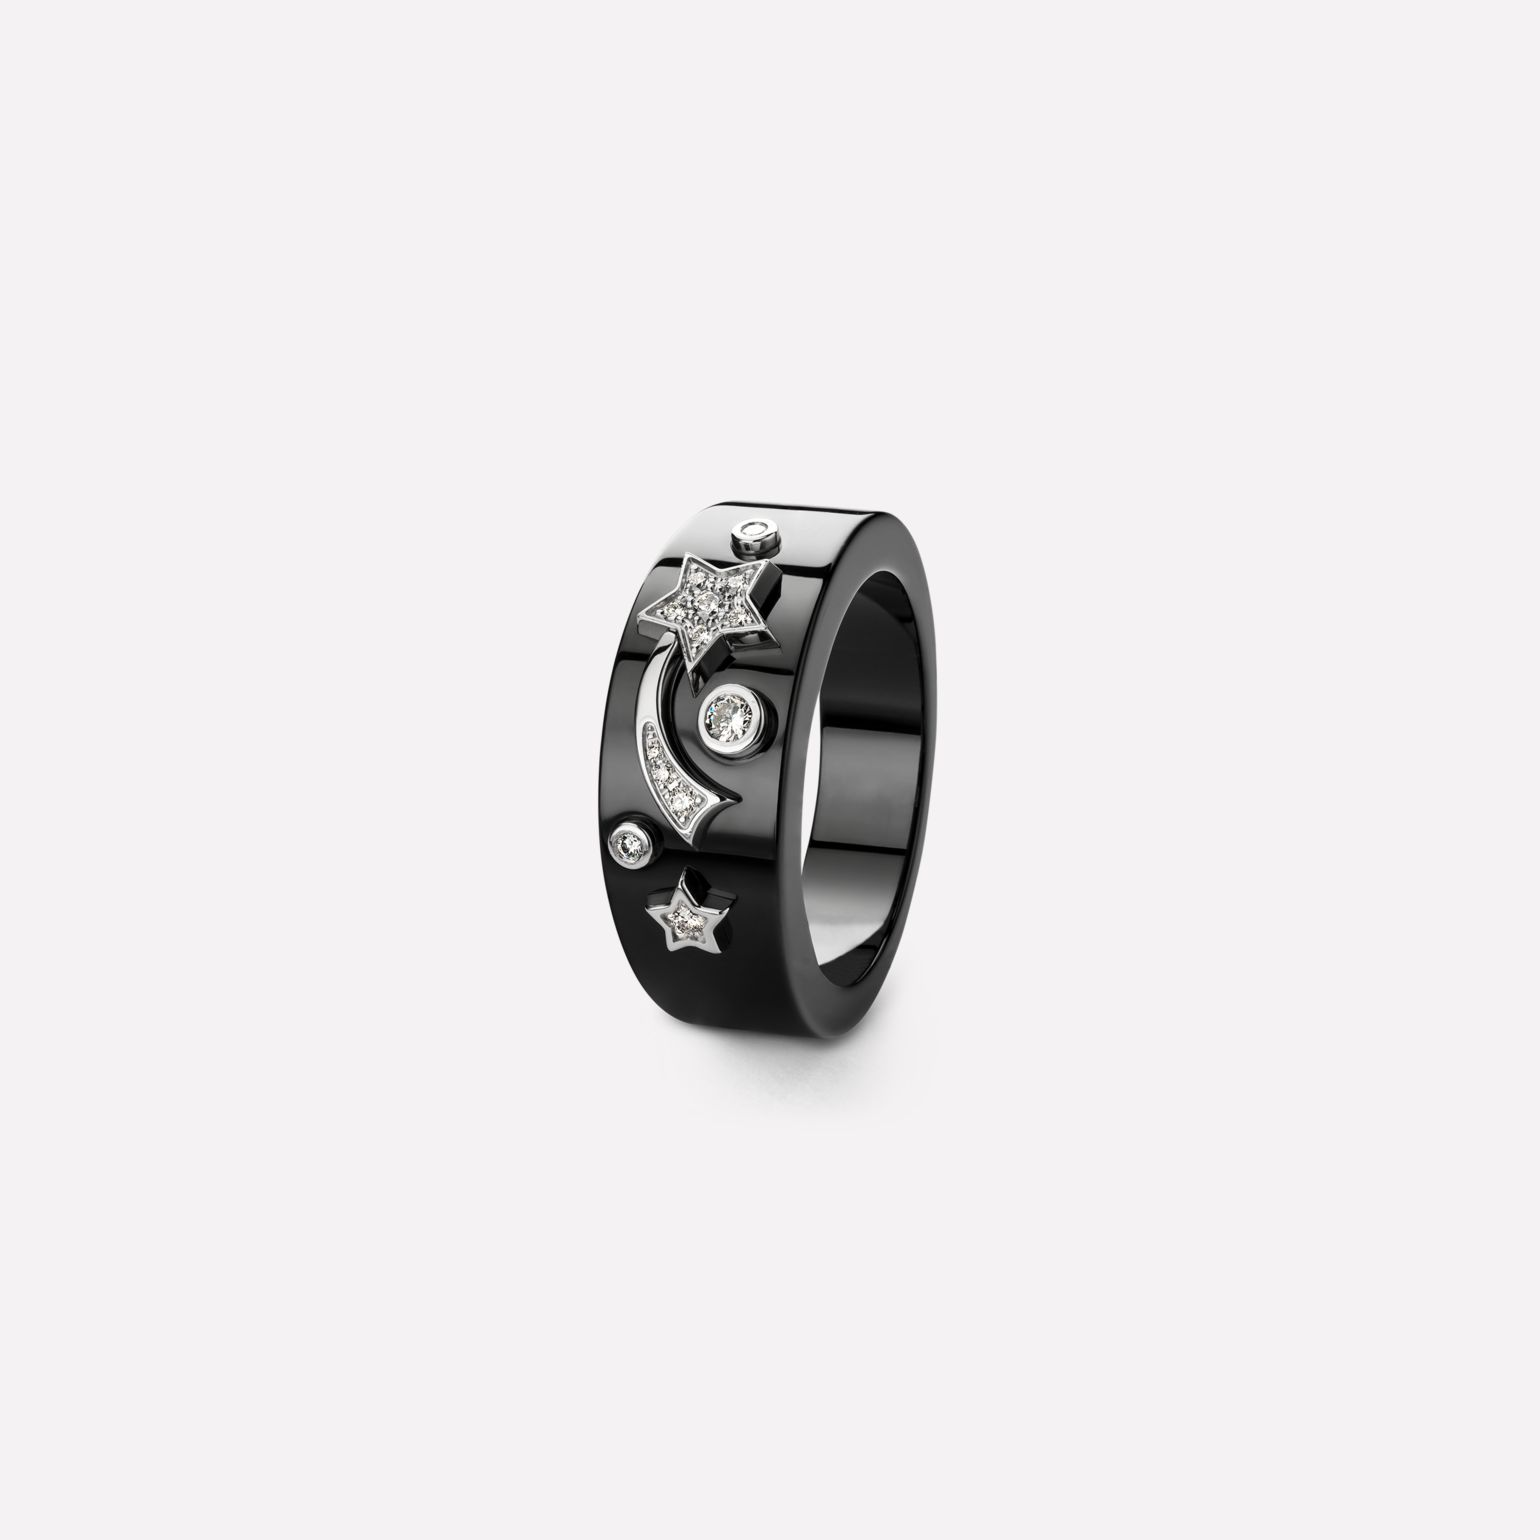 Comète ring Star ring, medium version, in black ceramic, 18K white gold and diamonds